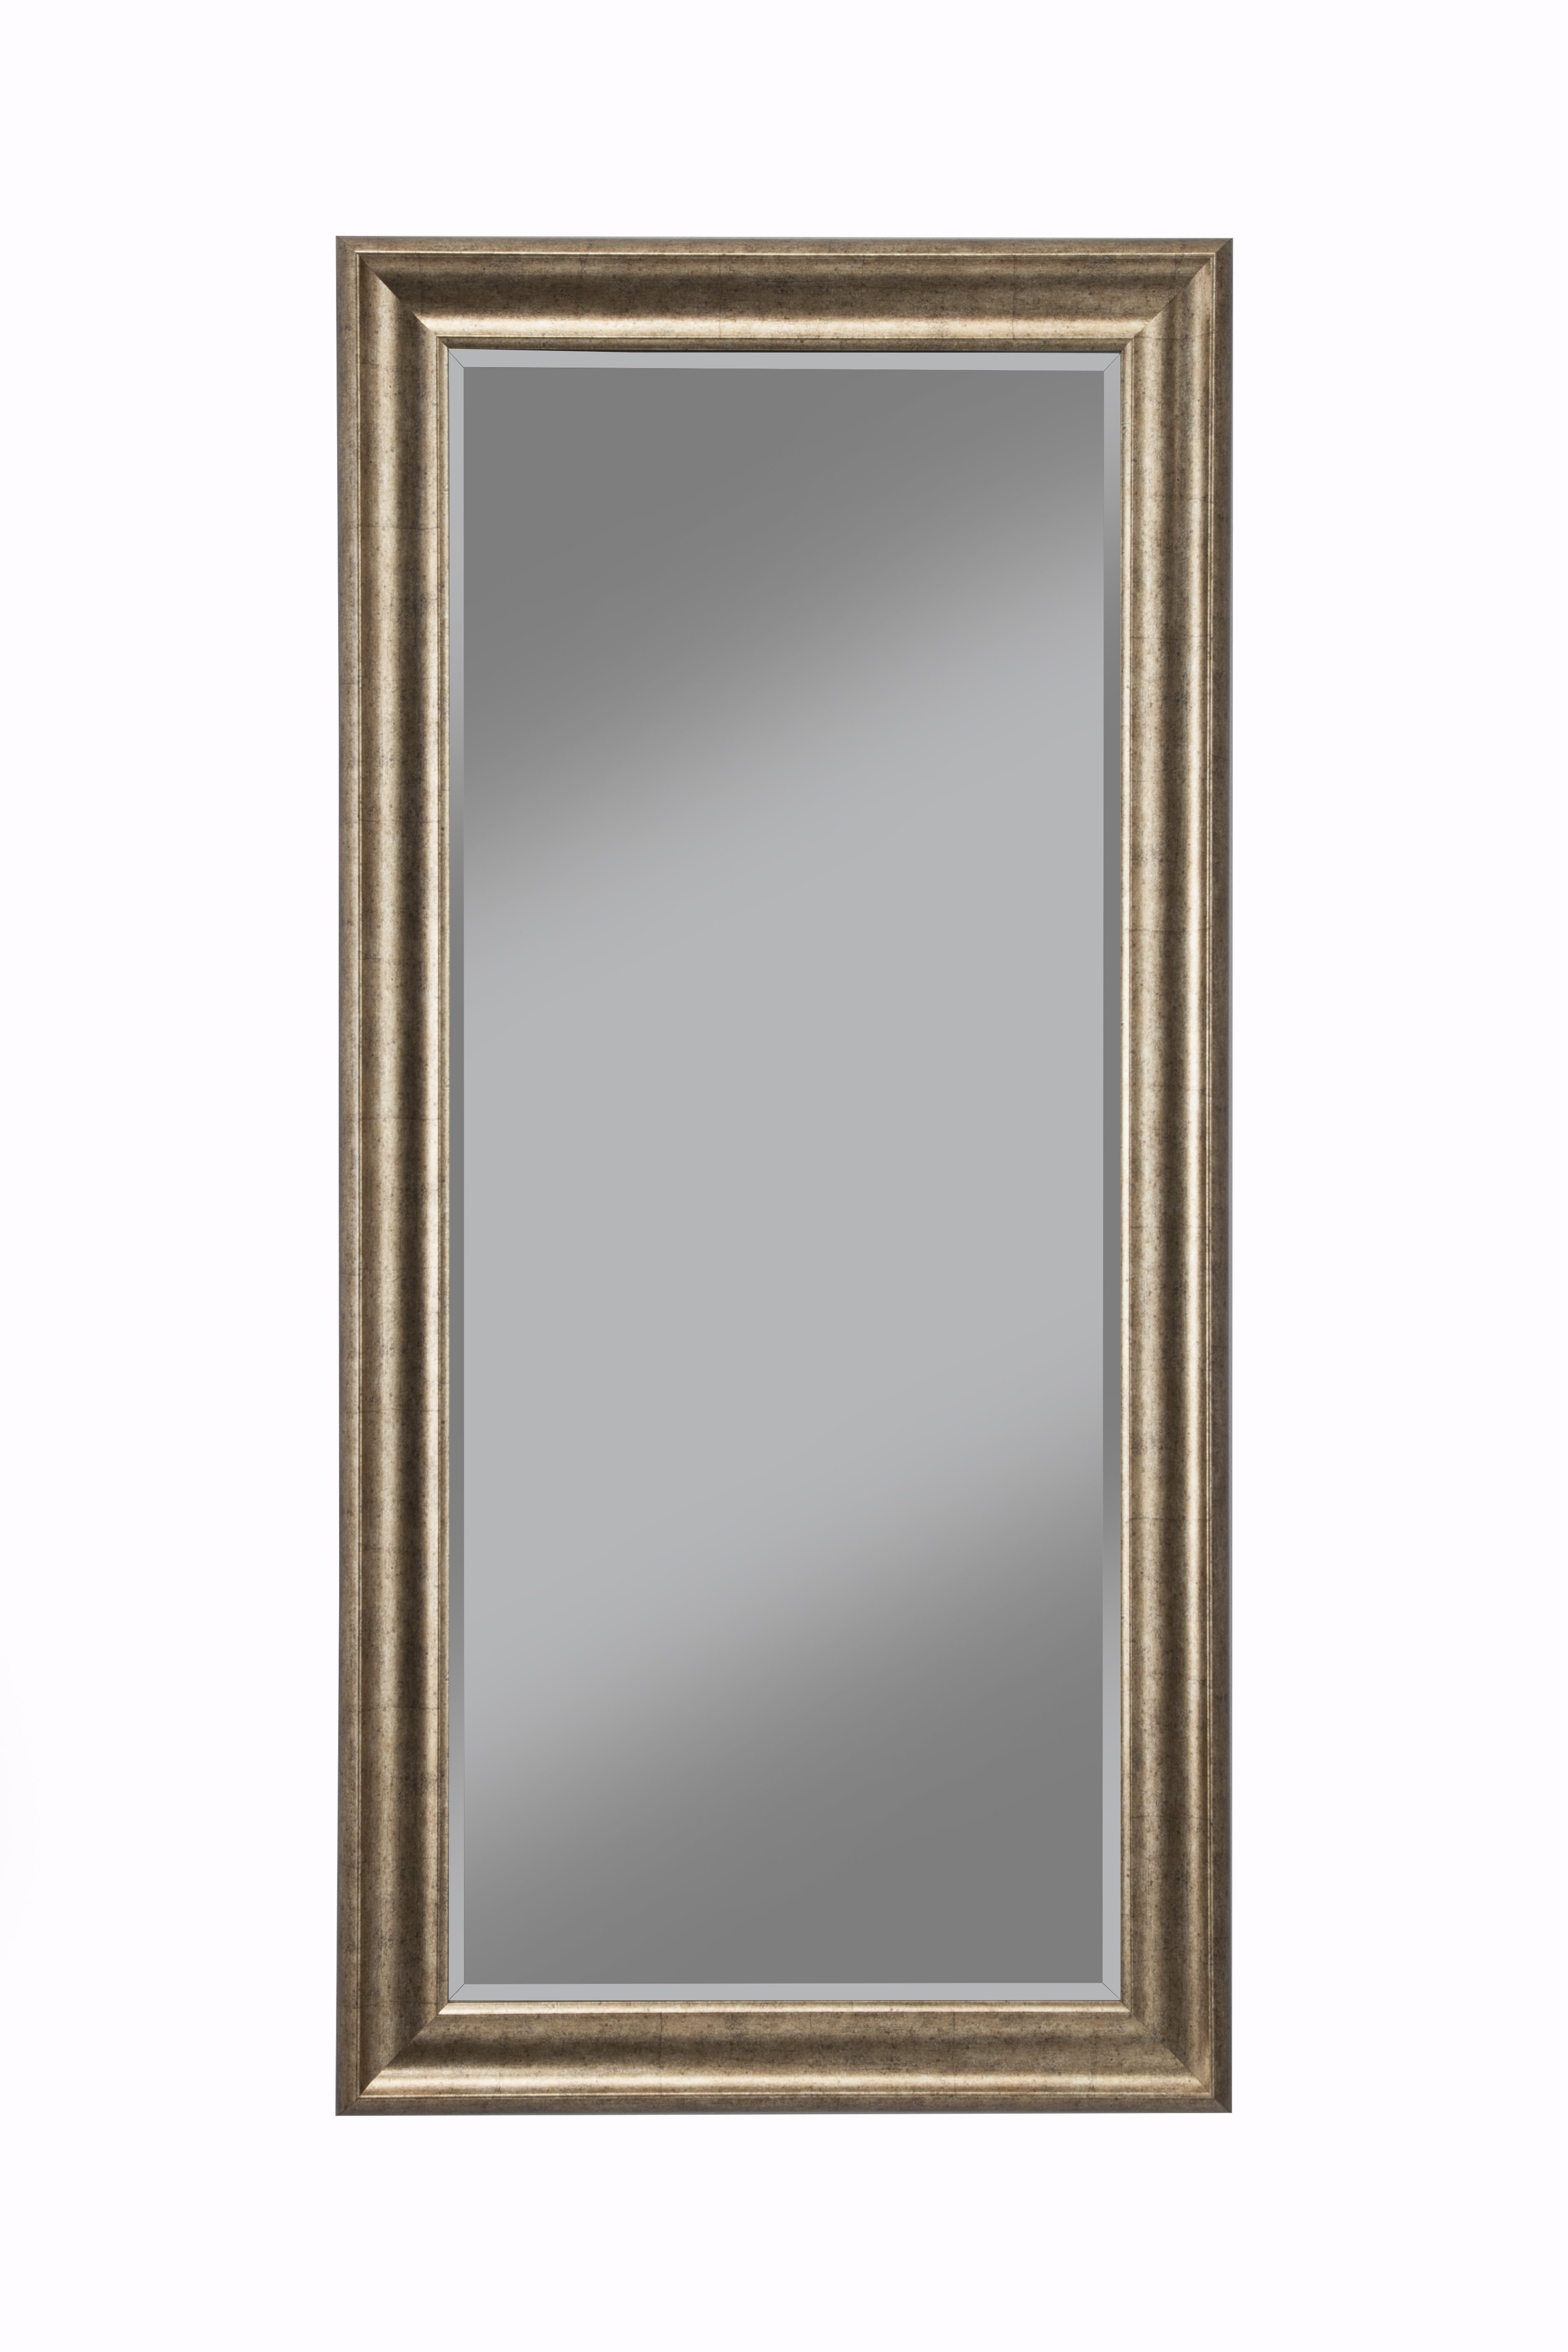 Modern Bathroom Mirrors | Allmodern Within Traditional Square Glass Wall Mirrors (Image 10 of 20)